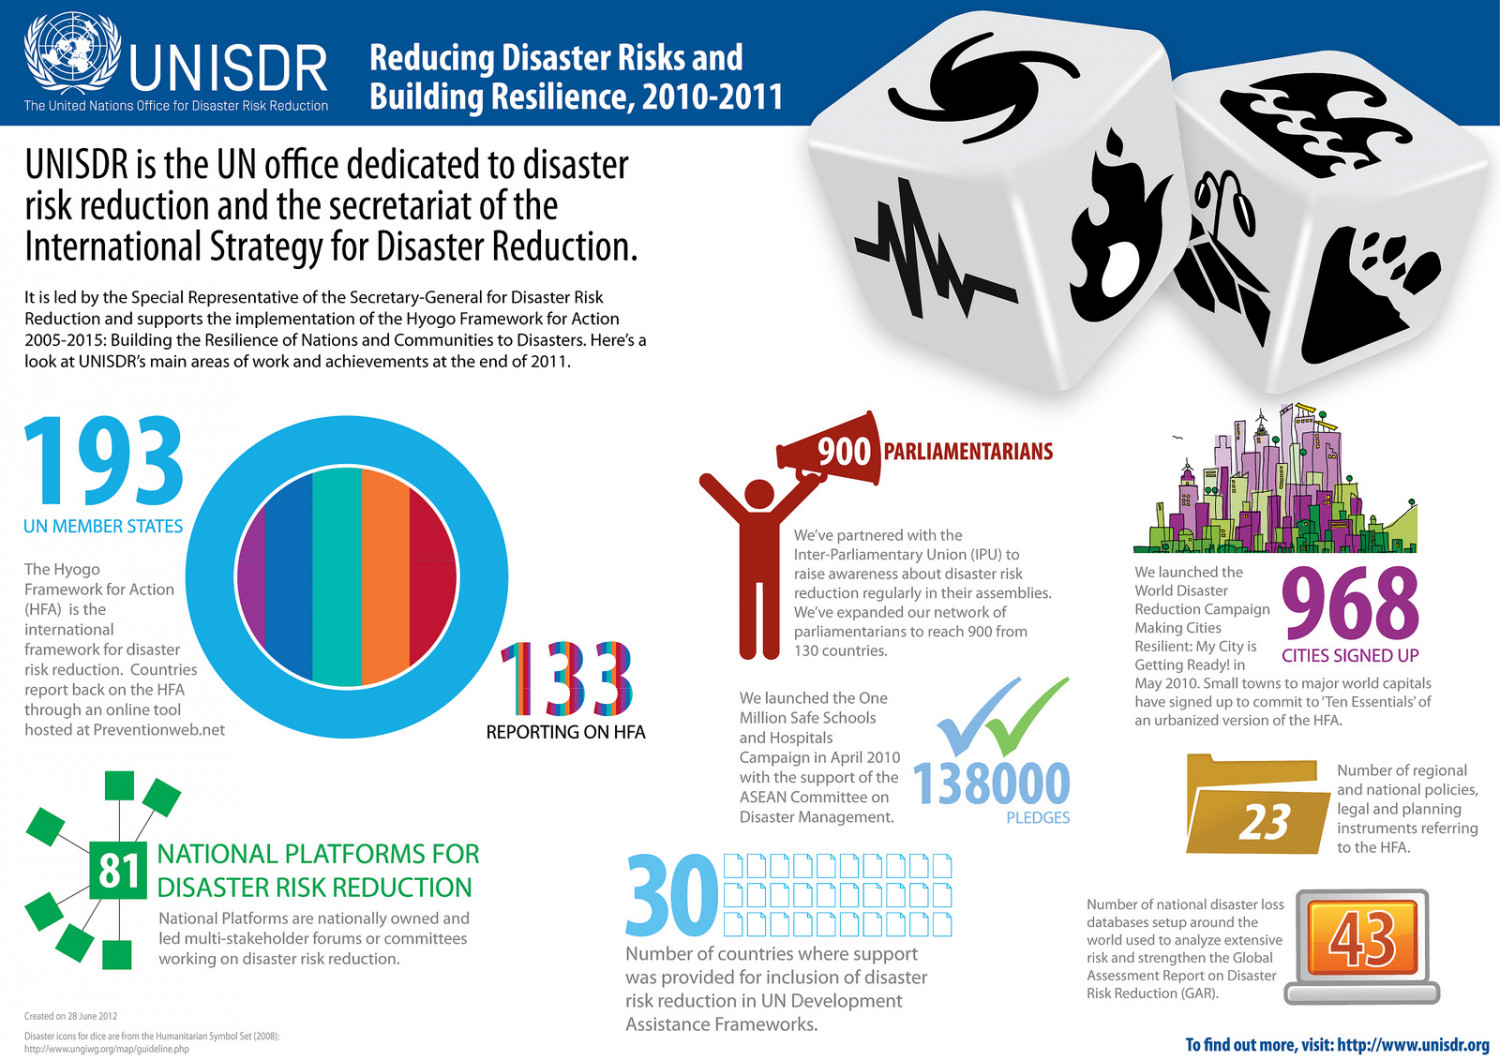 UNISDR Achievements, 2010-2011 Infographic